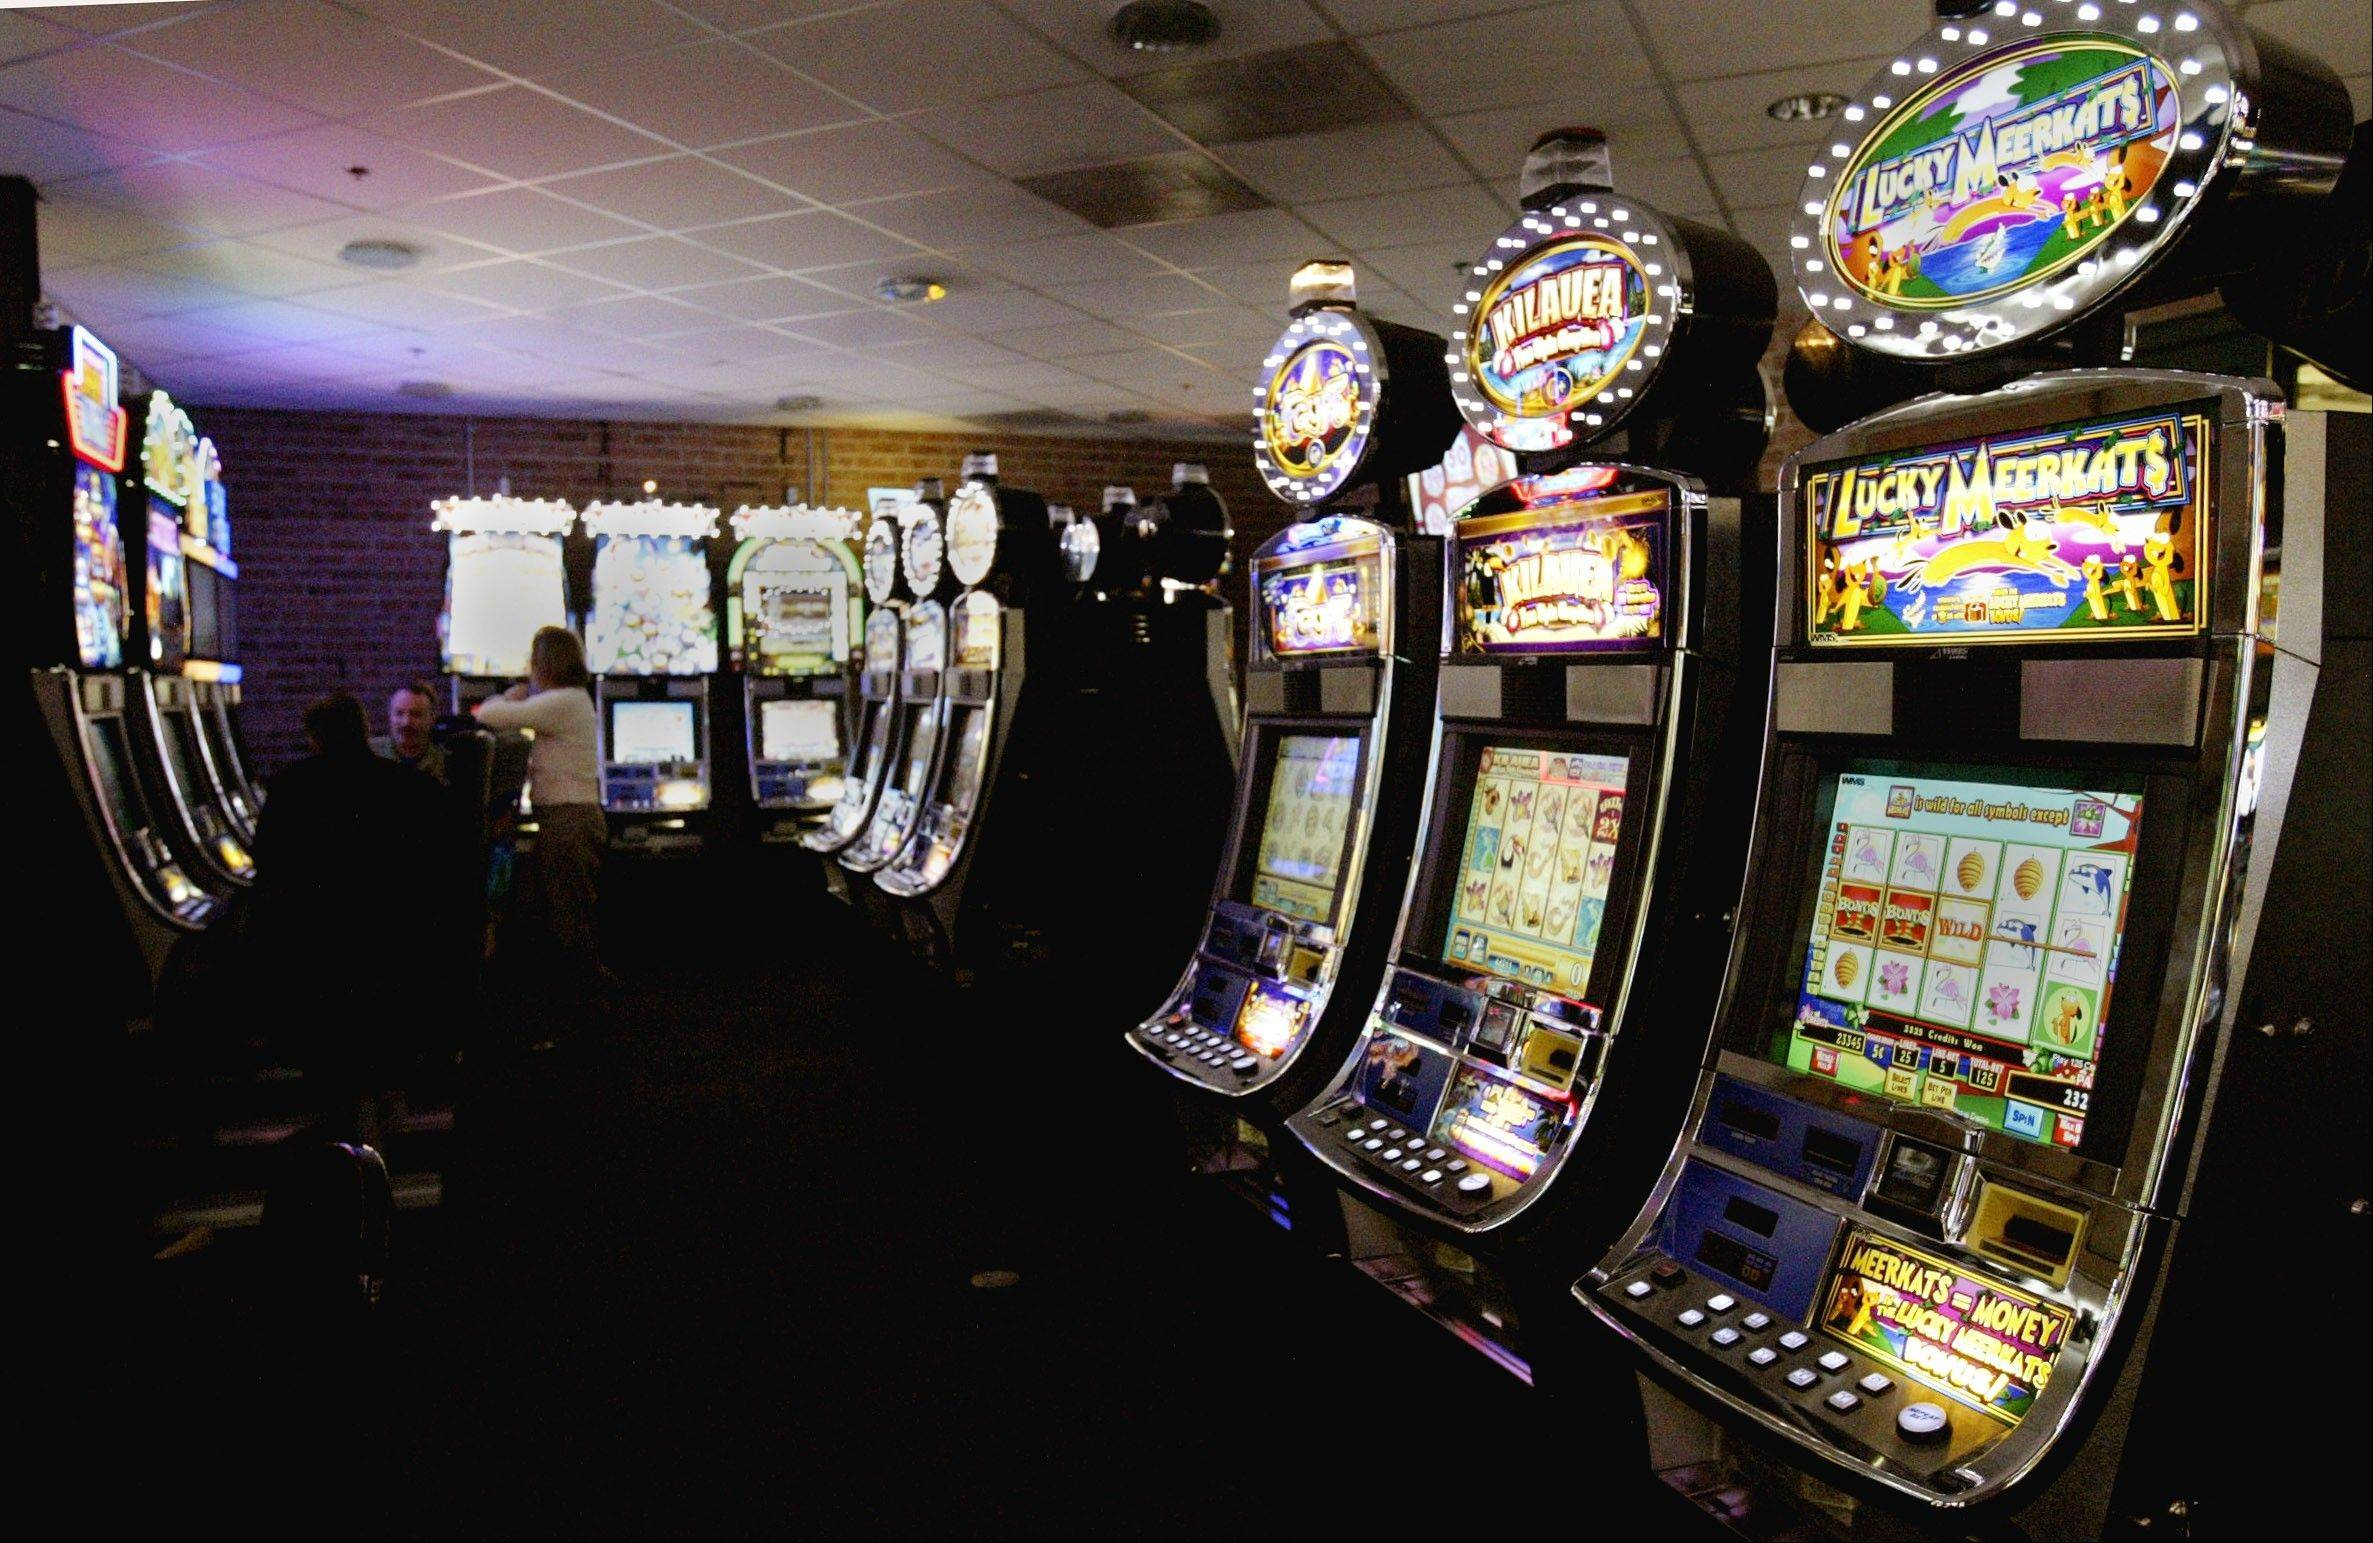 Another gambling vote could be coming up this November in Illinois, this time on overriding Gov. Pat Quinn�s veto of a bill that would allow slot machines at race tracks as well as new casinos.